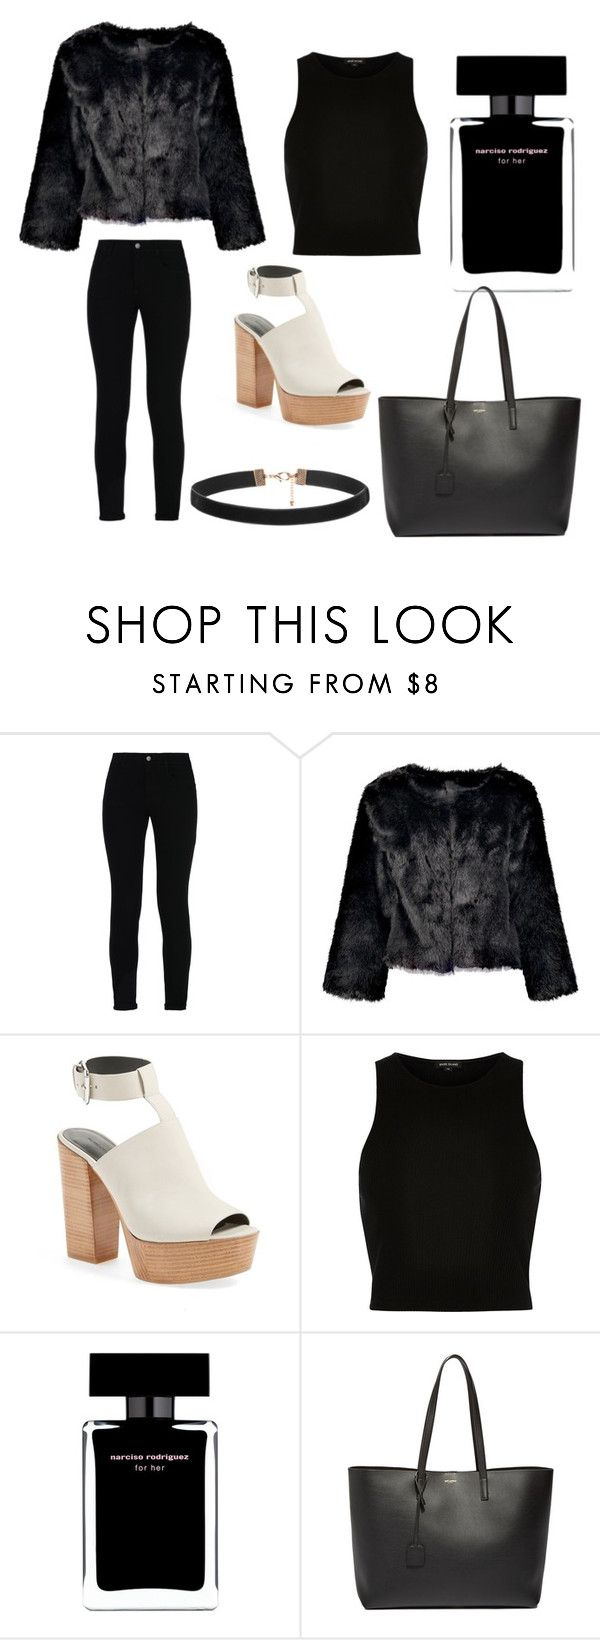 """Night Oufit"" by littleshunsine ❤ liked on Polyvore featuring STELLA McCARTNEY, Rebecca Minkoff, Narciso Rodriguez, Yves Saint Laurent, women's clothing, women, female, woman, misses and juniors"